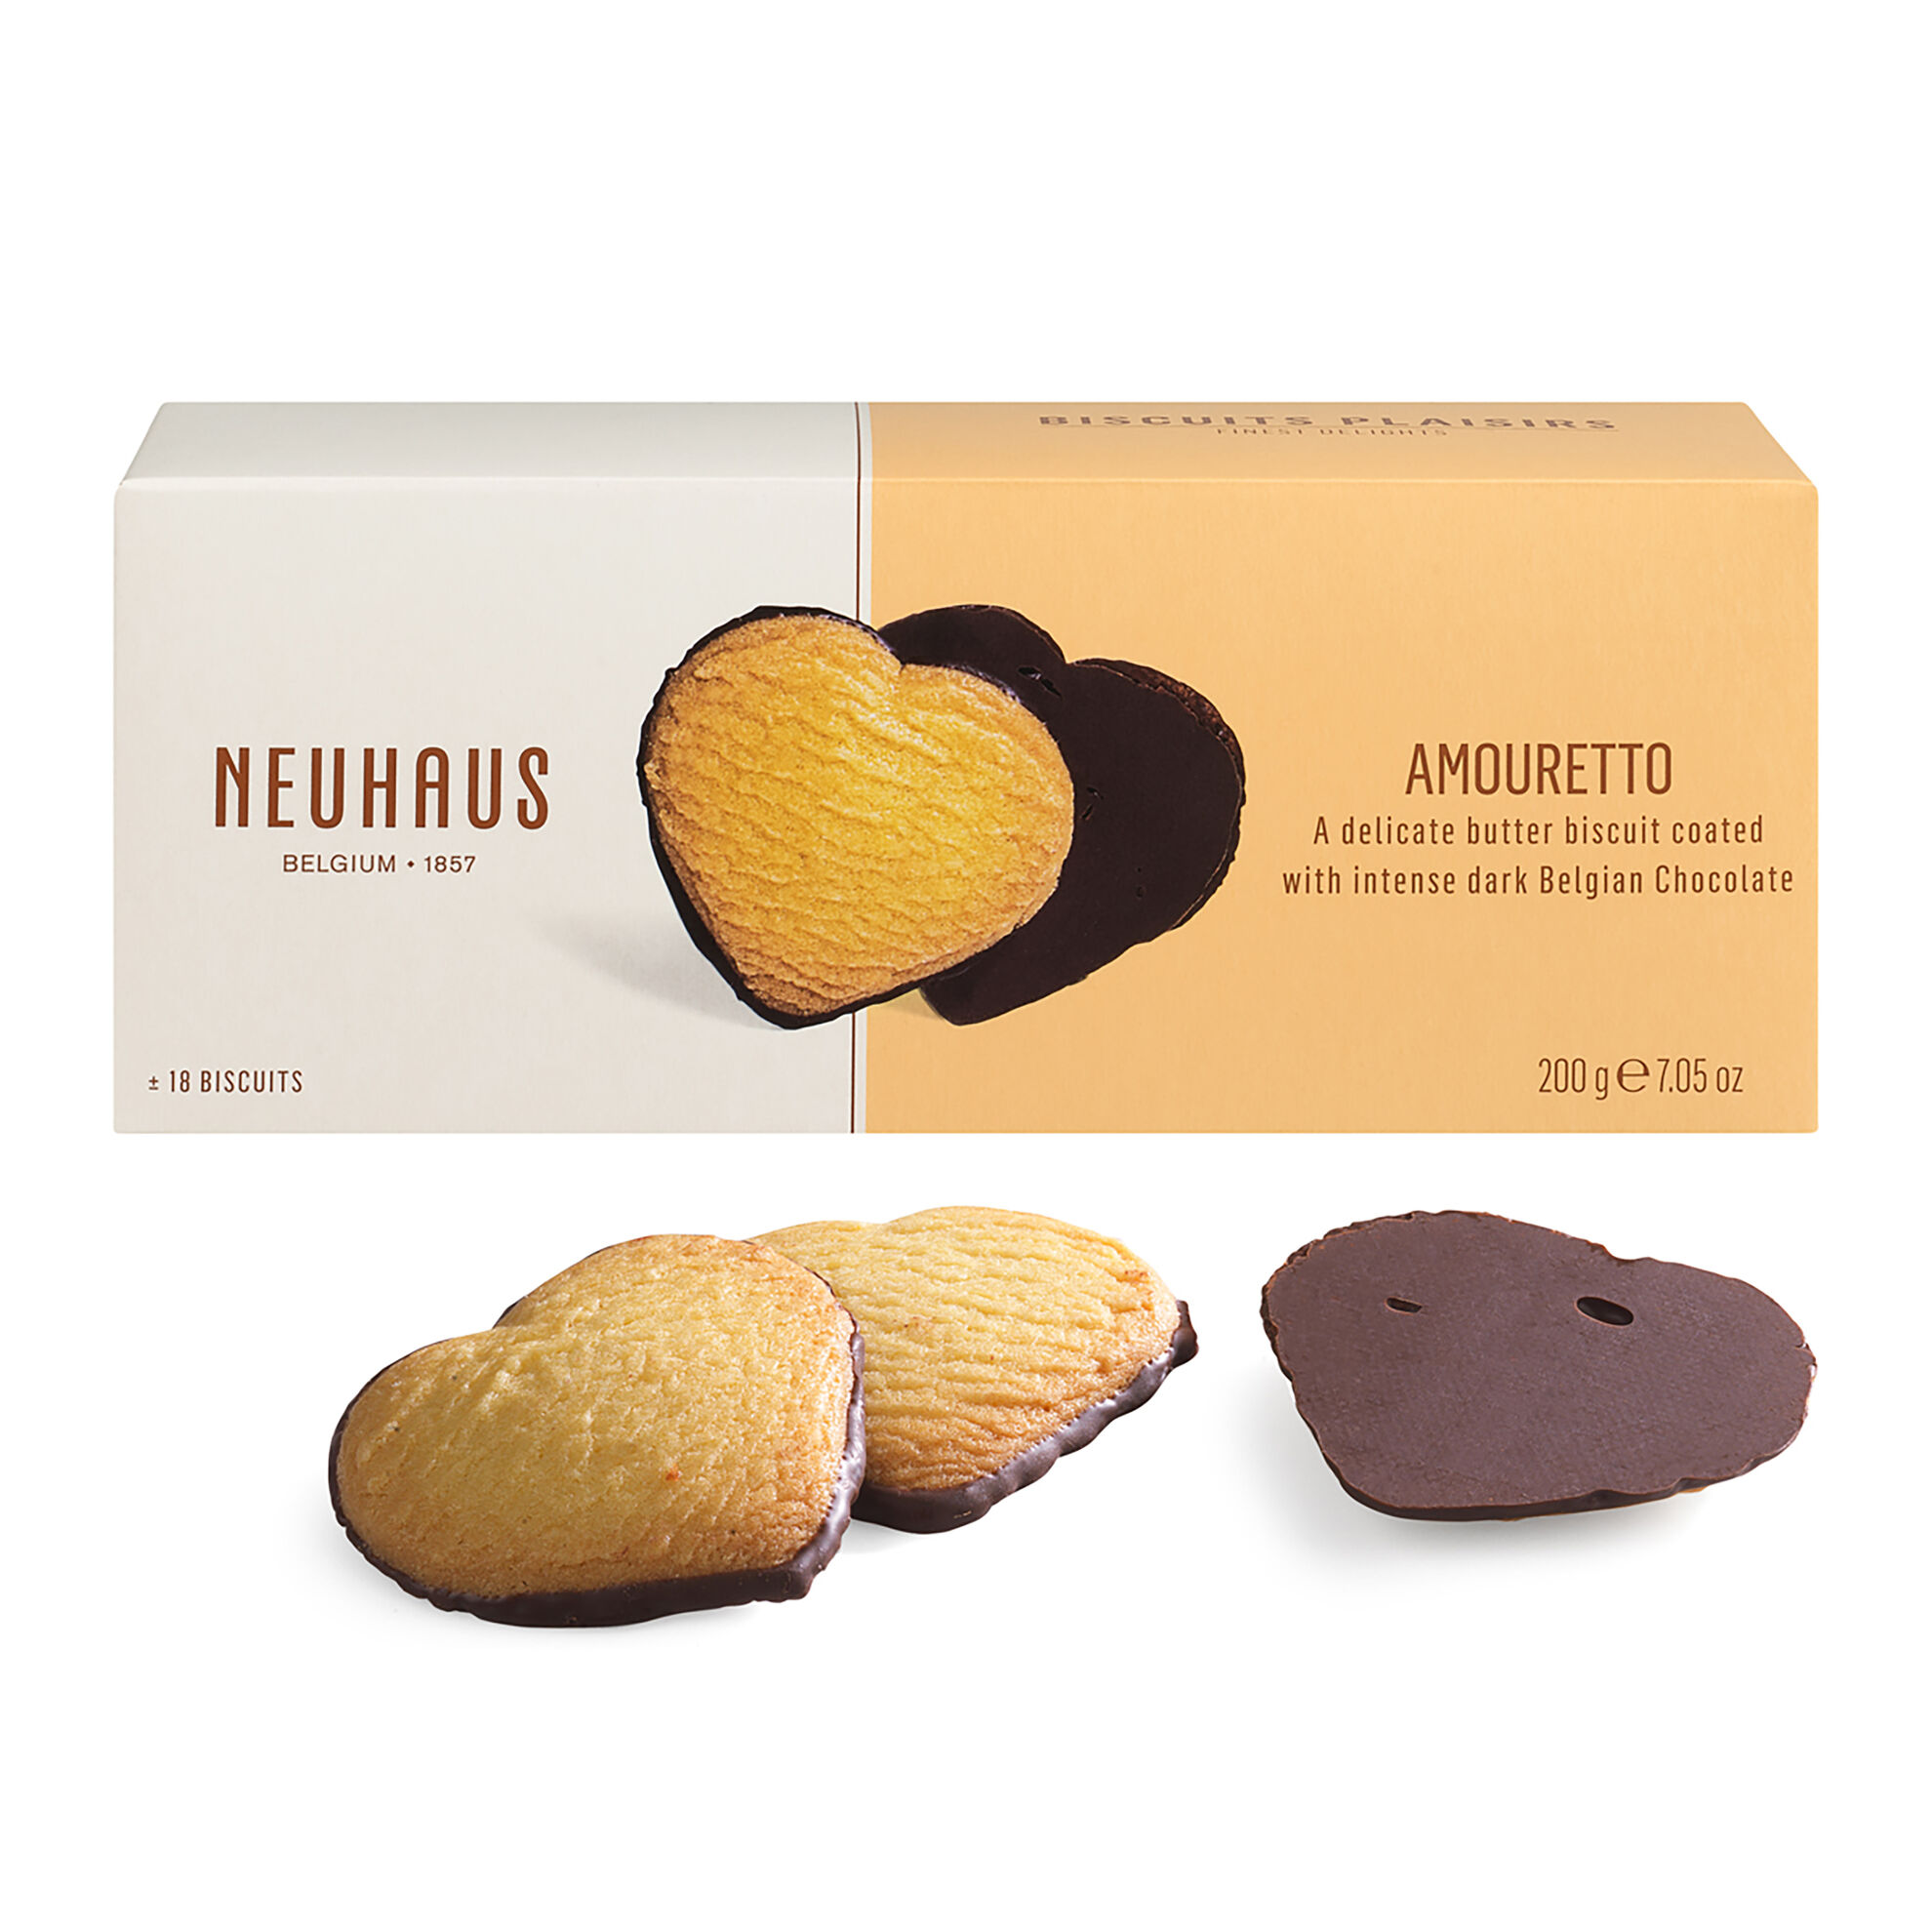 Amouretto Biscuits image number 01